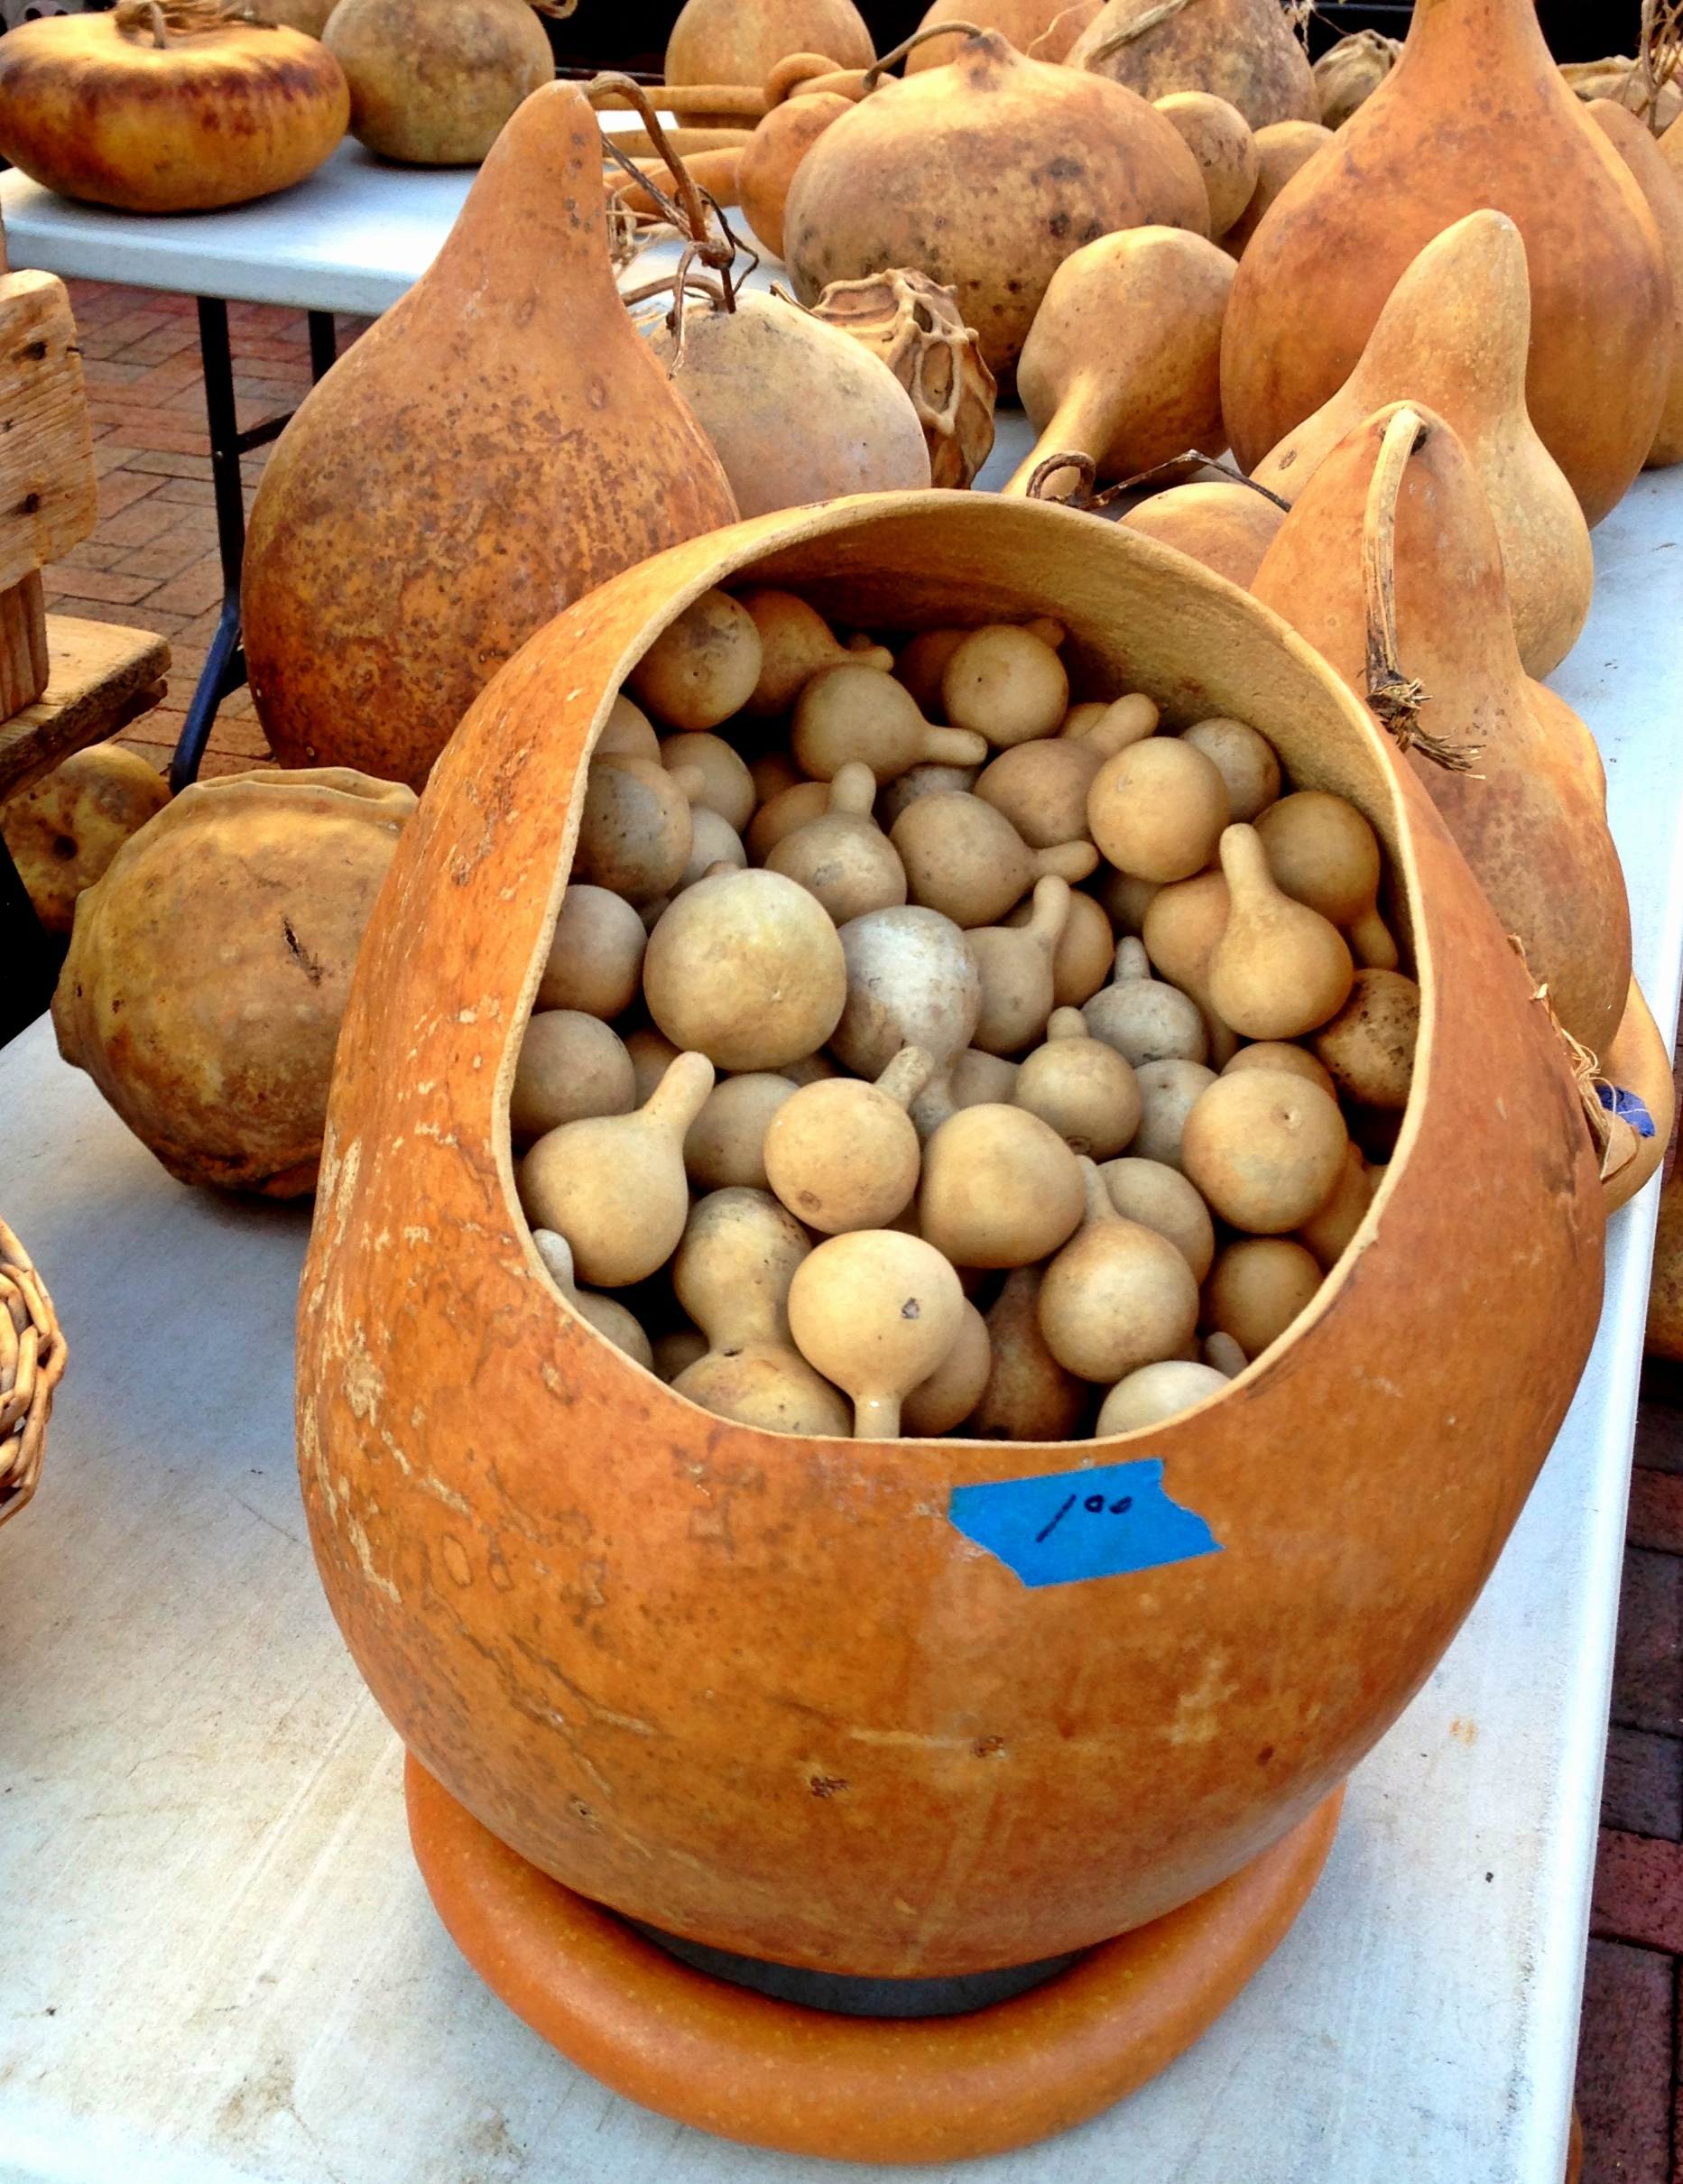 The First Dane County Farmers Market of the Season